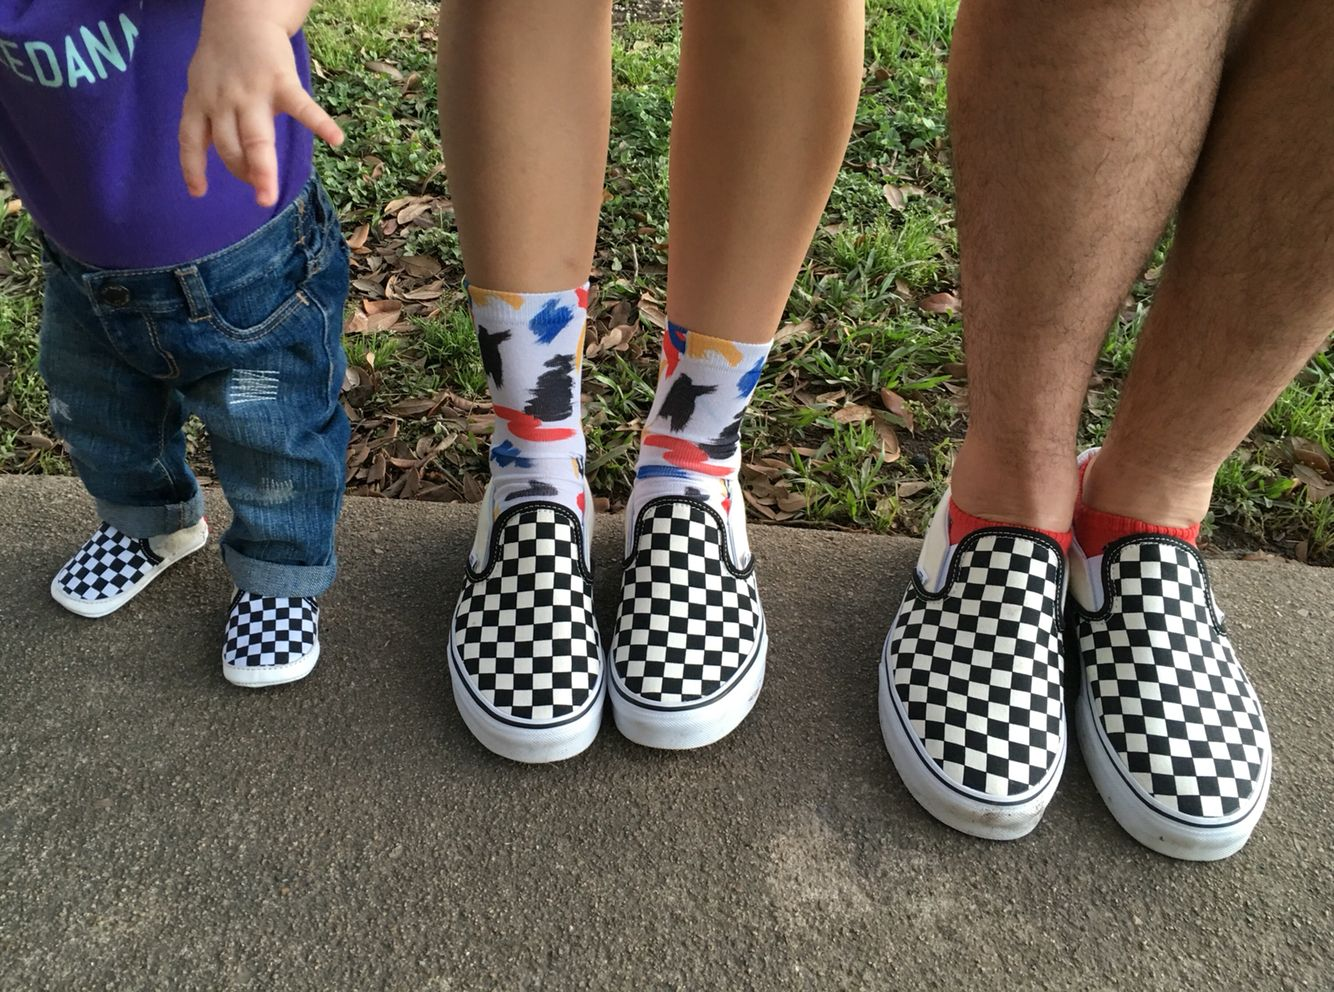 Newborn Shoes Vans Matching Dad Mom And Baby Vans Little Baby Baby Vans